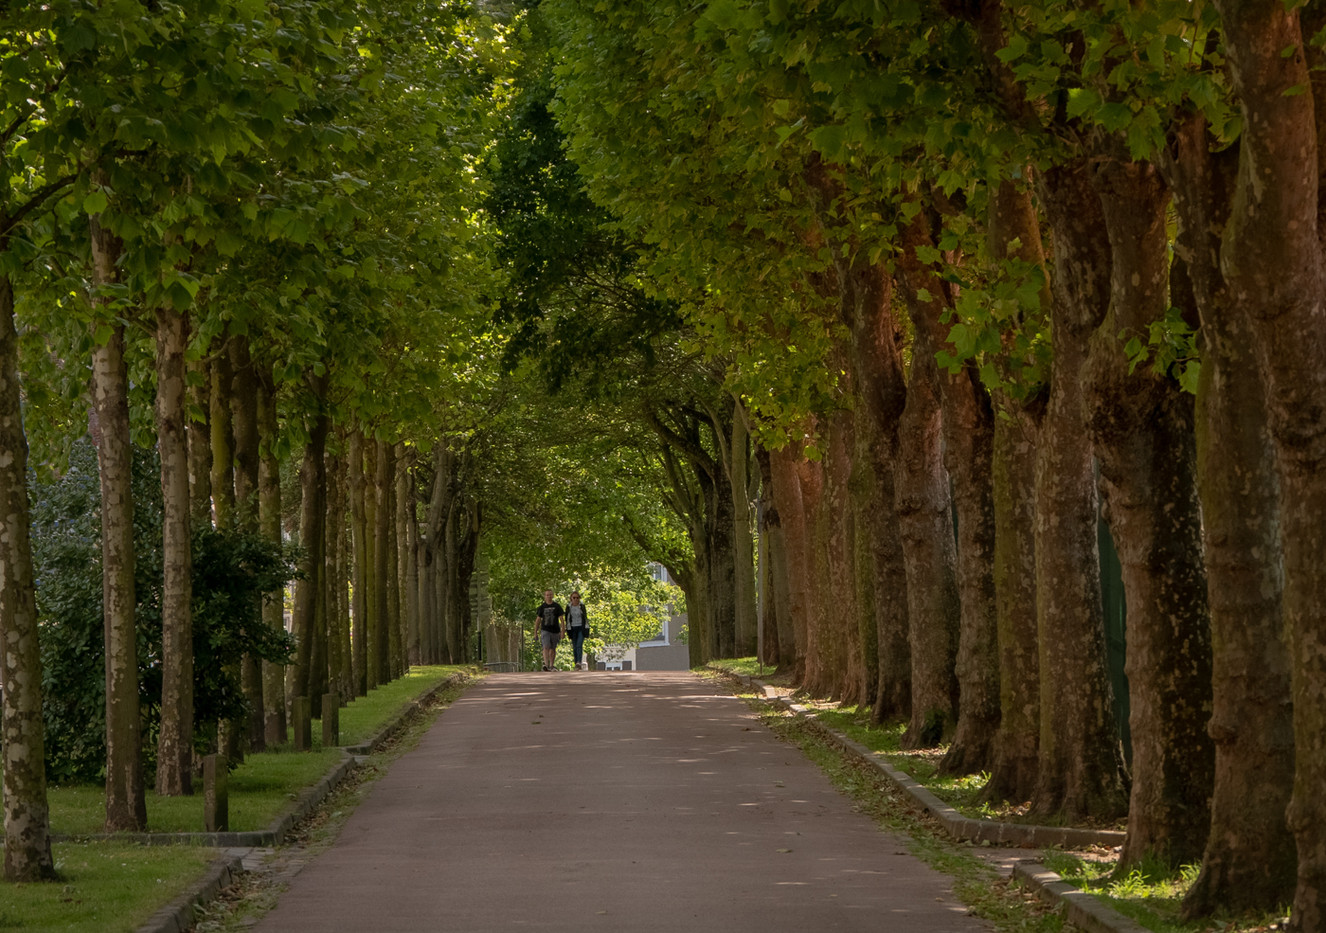 16 A STROLL DOWN A BOULOGNE AVENUE by Roger Wates